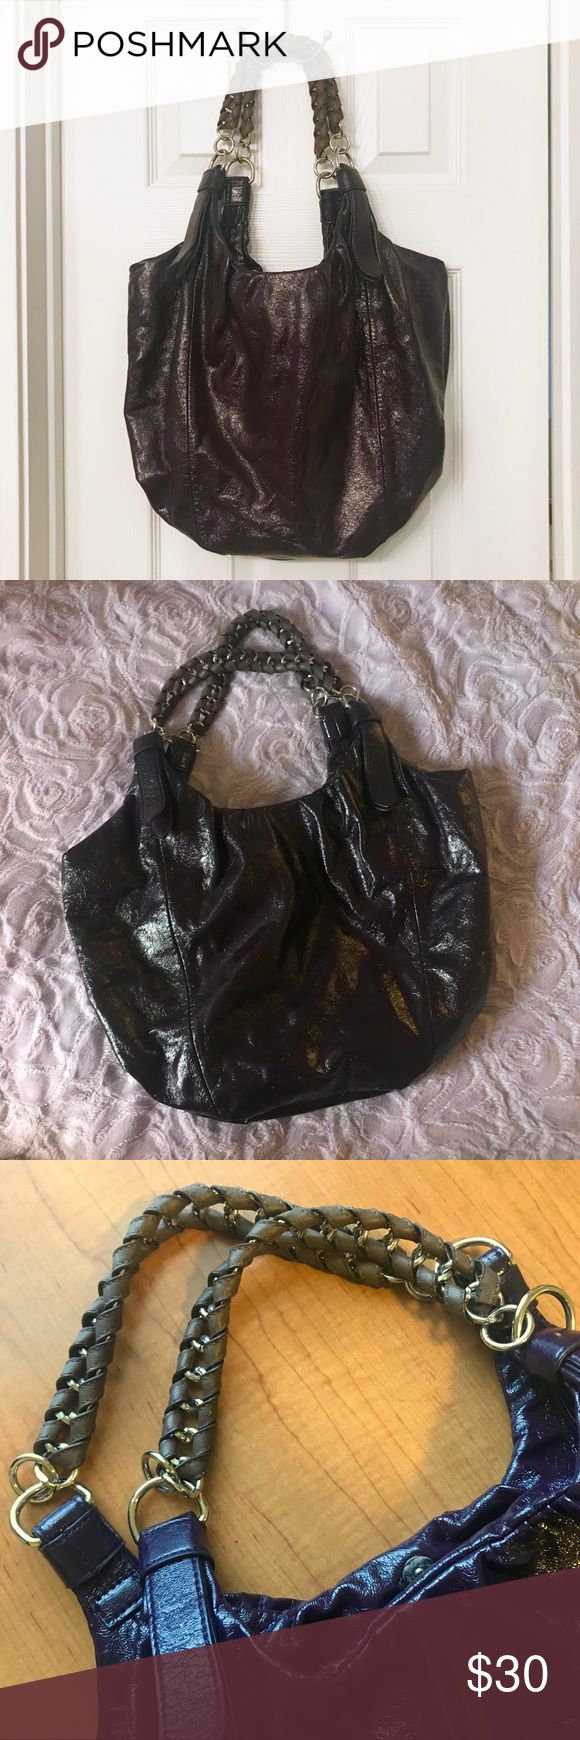 Banana Republic bag Violet hobo bag from Banana Republic. New with no tag. Banana Republic Bags Hobos